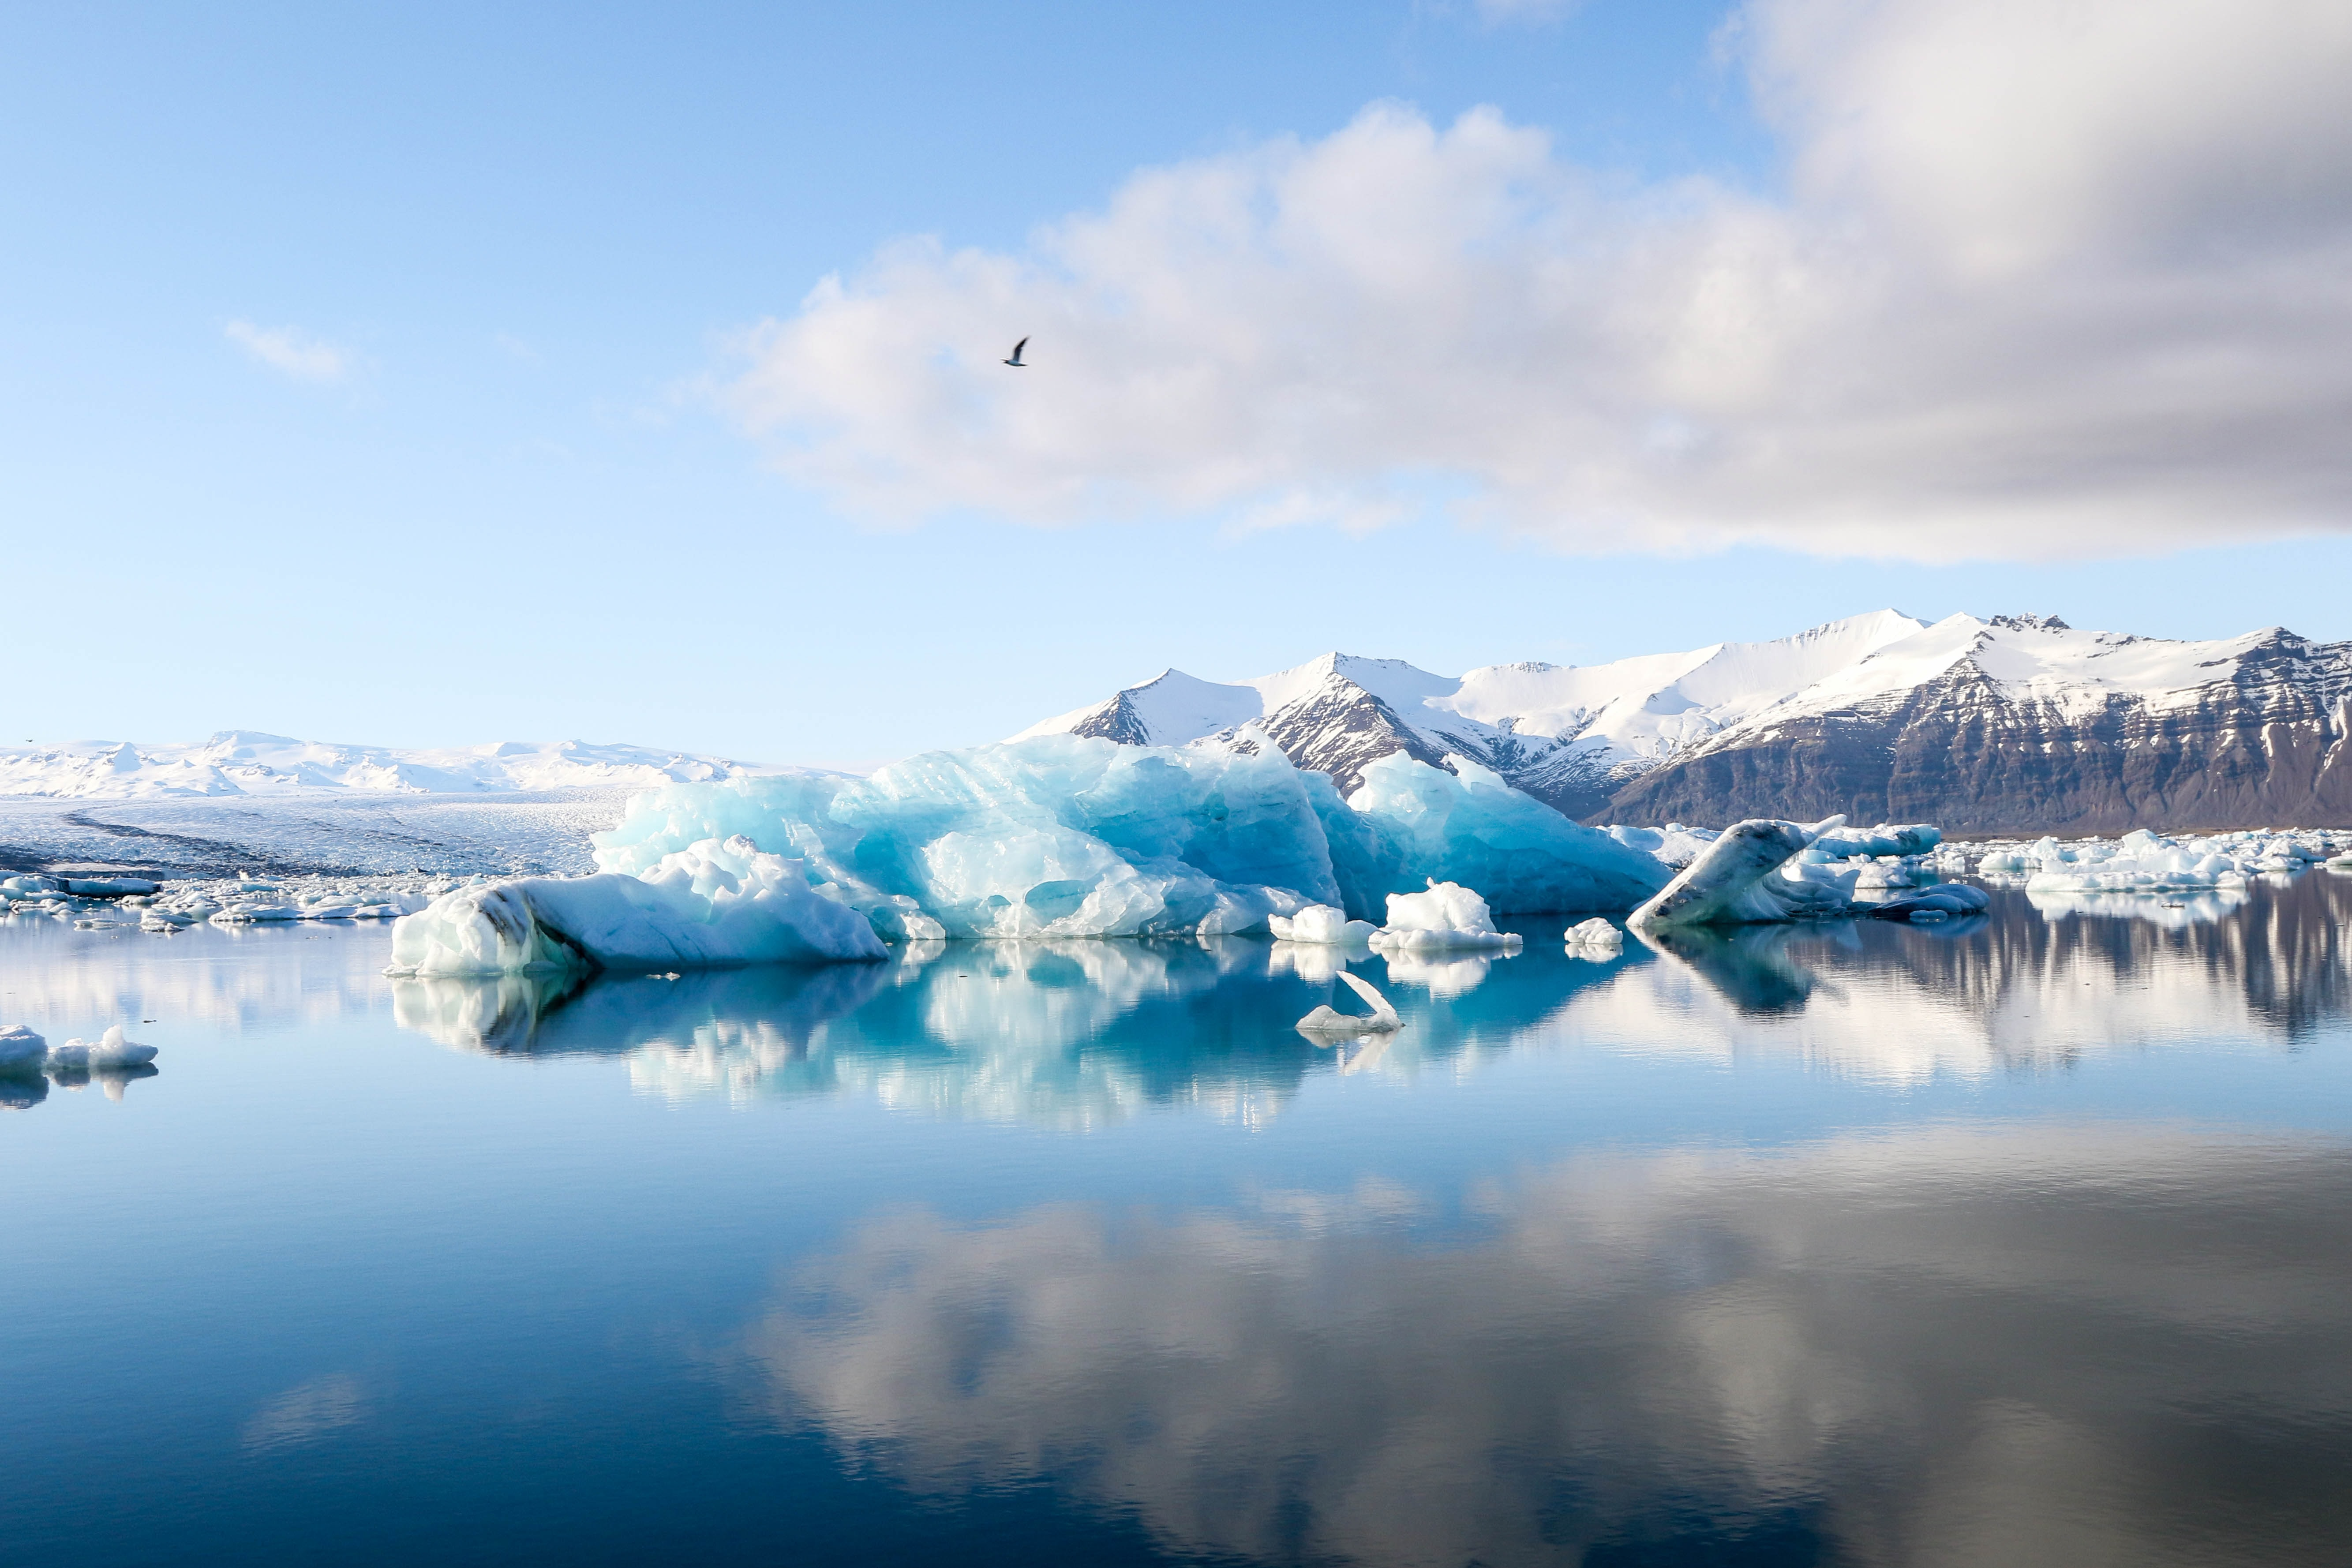 A landscape view of an iceberg and its reflection in the water clear blue water.